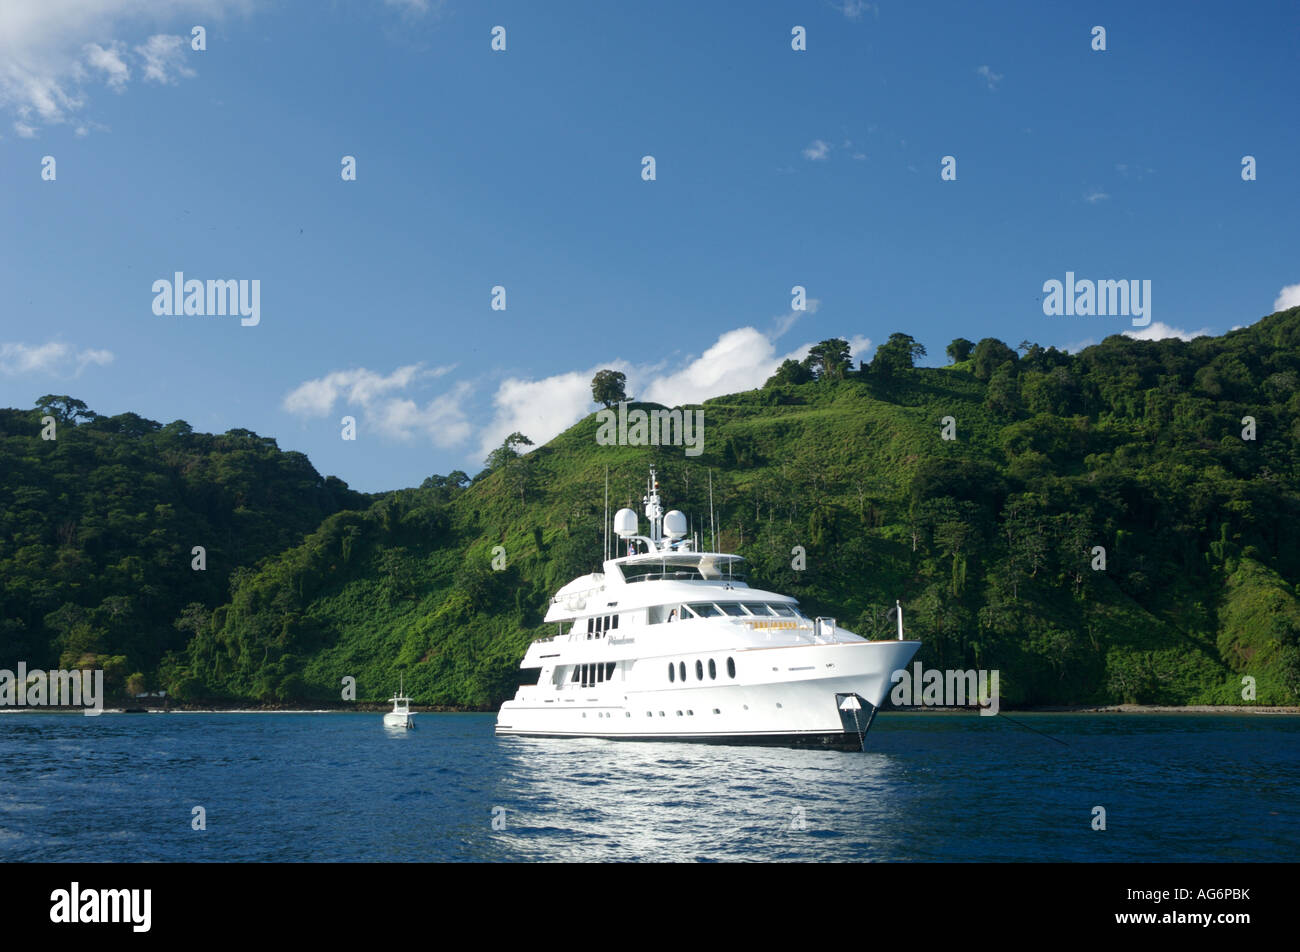 A private yacht at anchor in Cocos Island Costa Rica - Stock Image